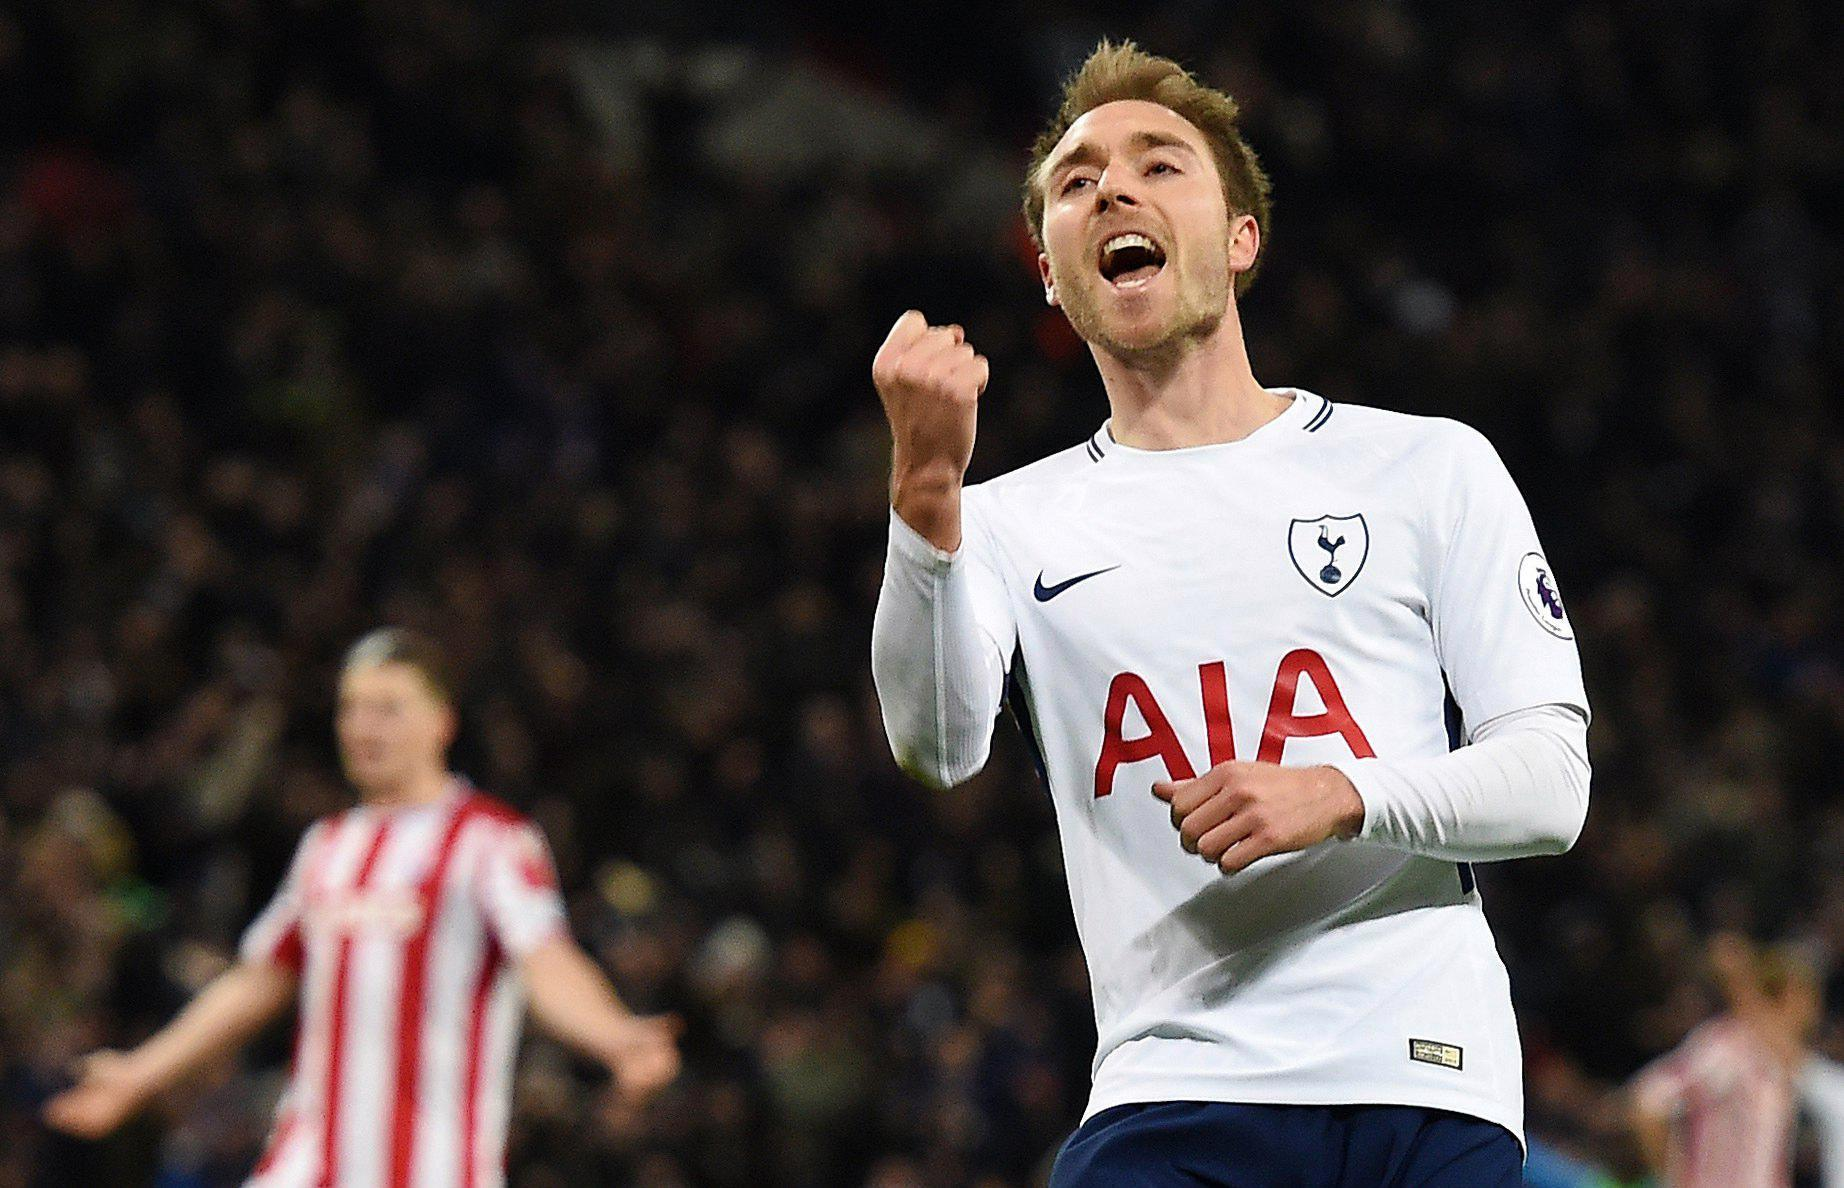 Eriksen has benefited from the voting system